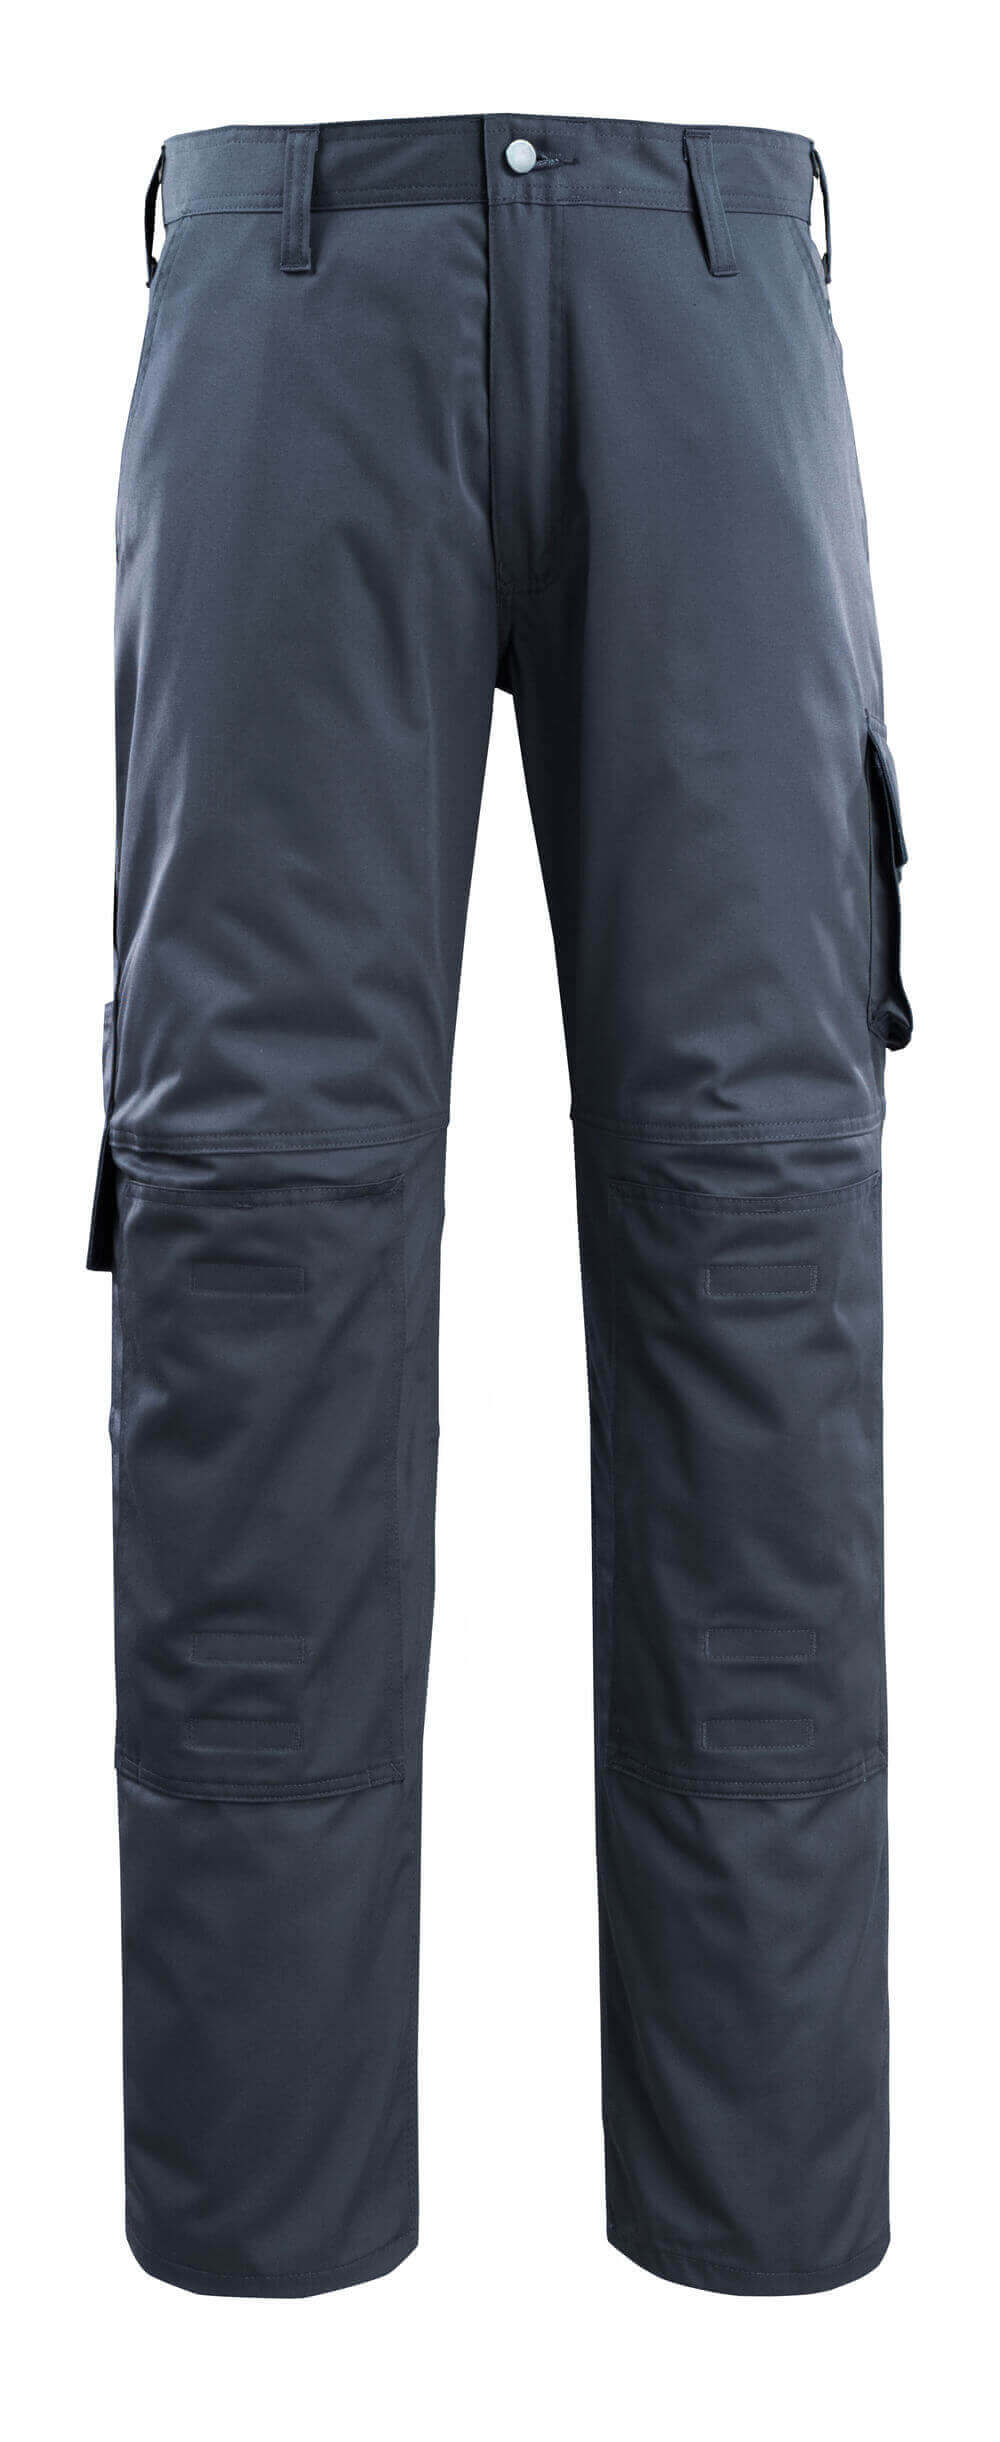 14379-850-010 Pants with kneepad pockets - dark navy